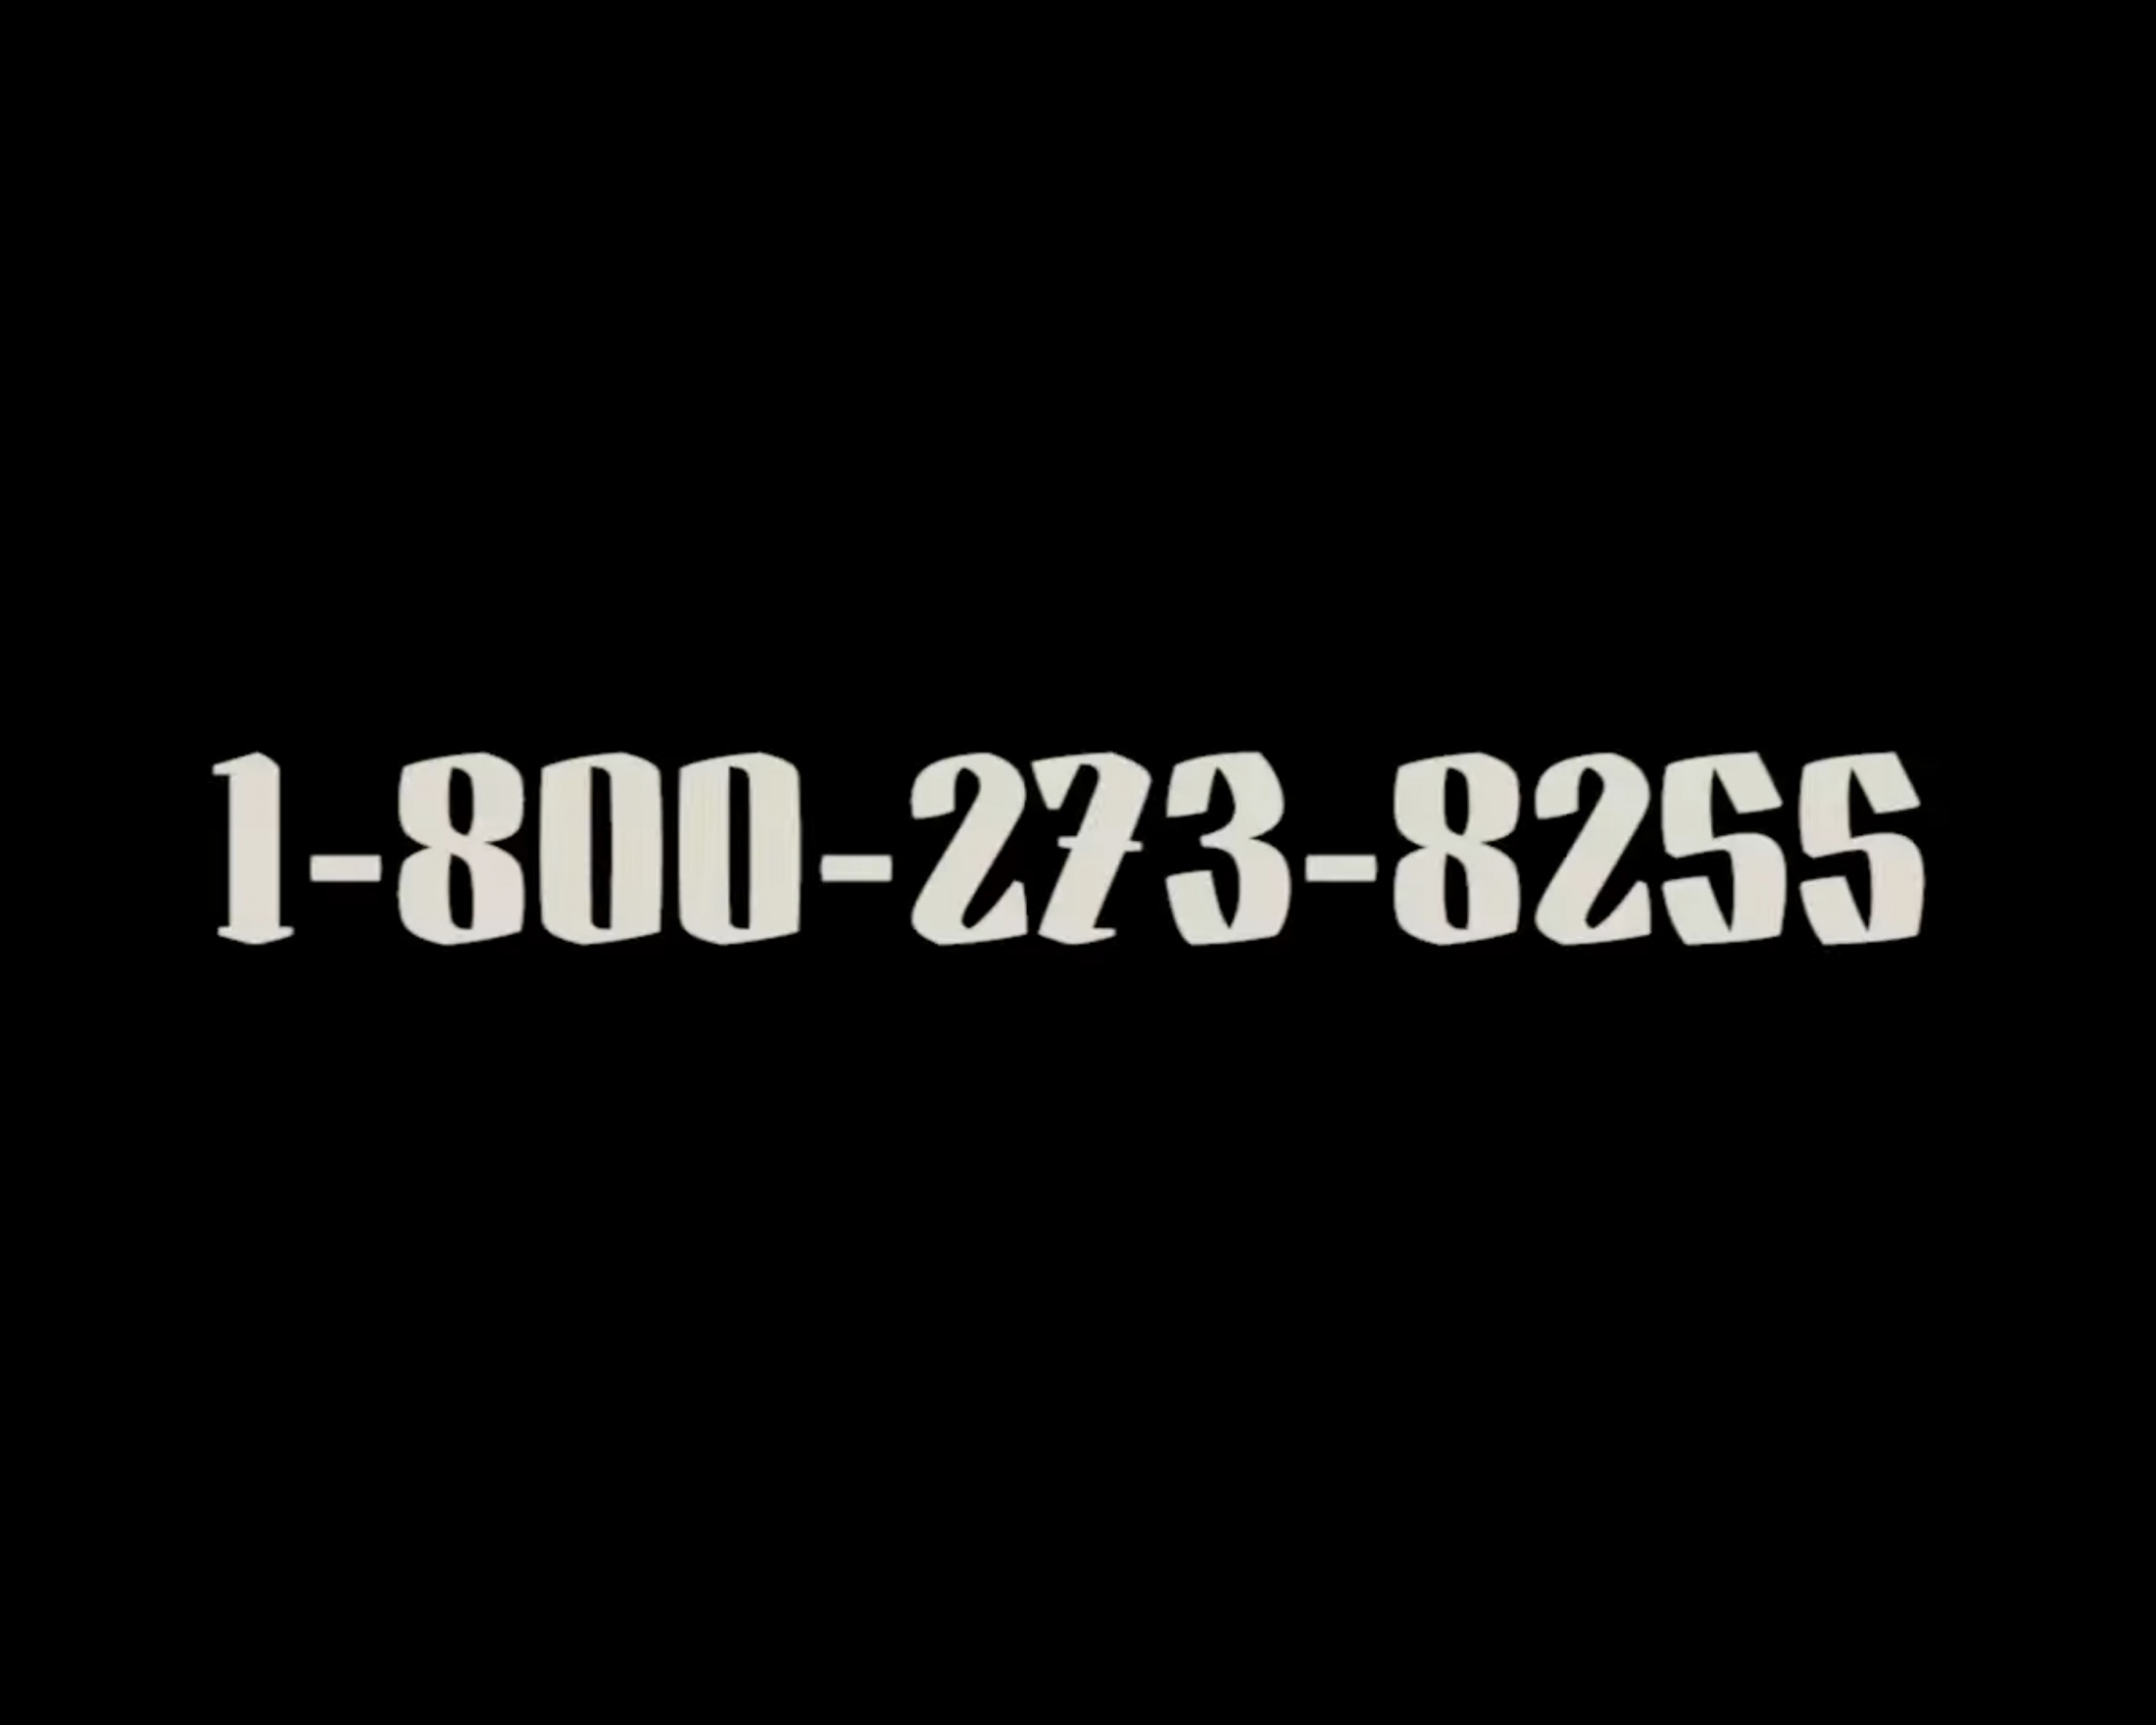 Thumbnail for 1-800-273-8255